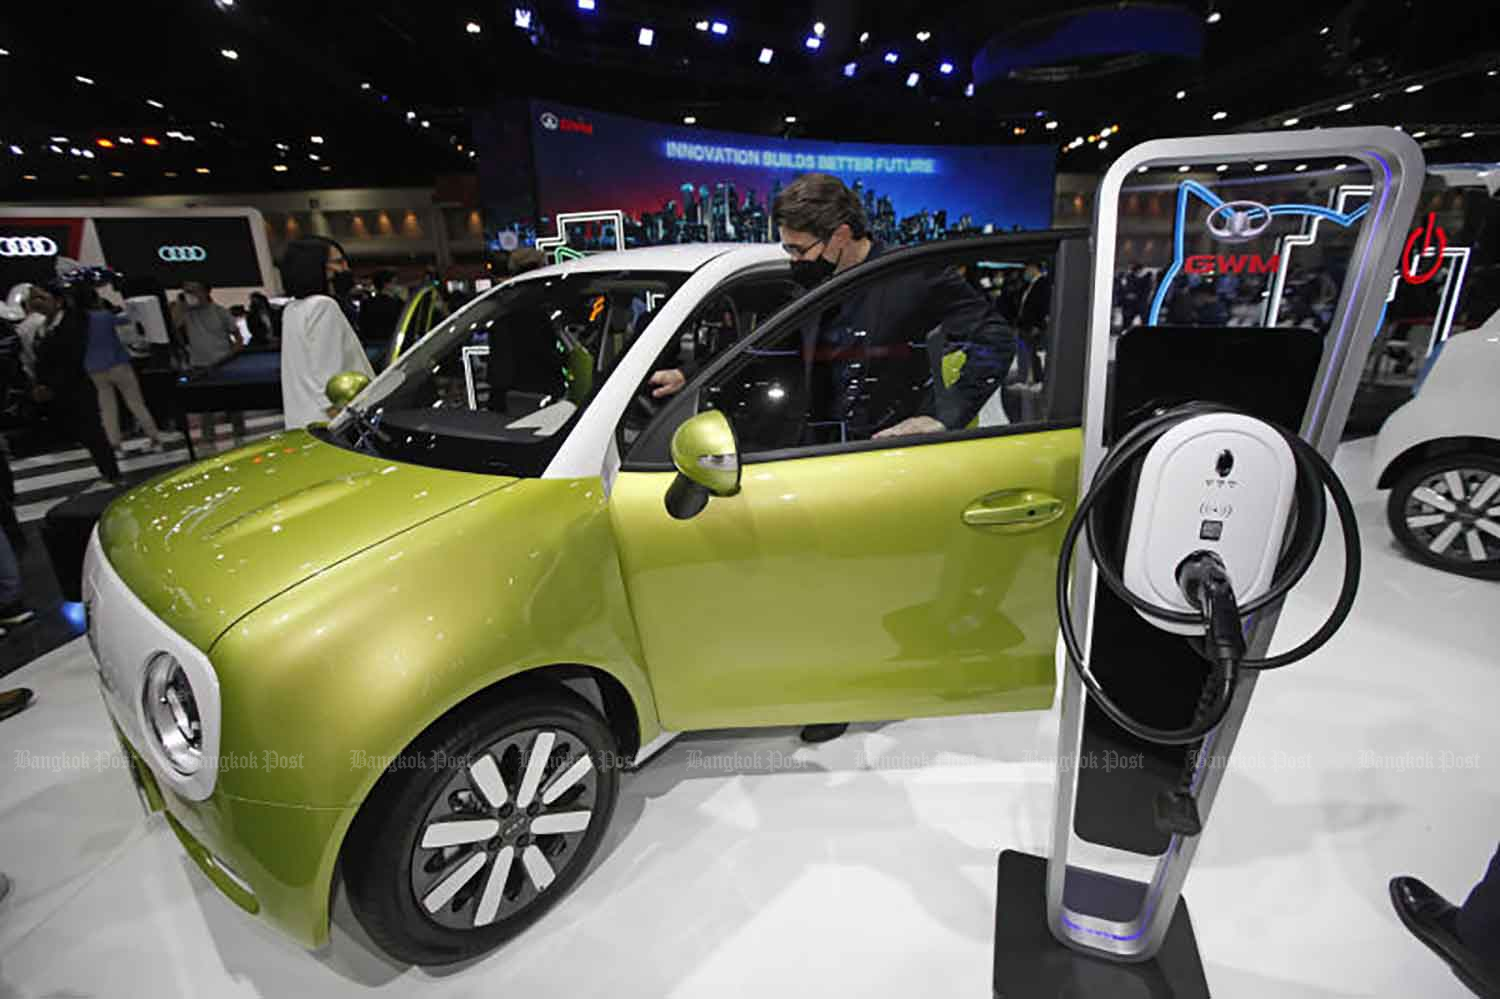 Visitors to the Bangkok International Motor Show have first-hand experience of an electric vehicle on Tuesday. (Photo: Varuty Hirunyatheb)